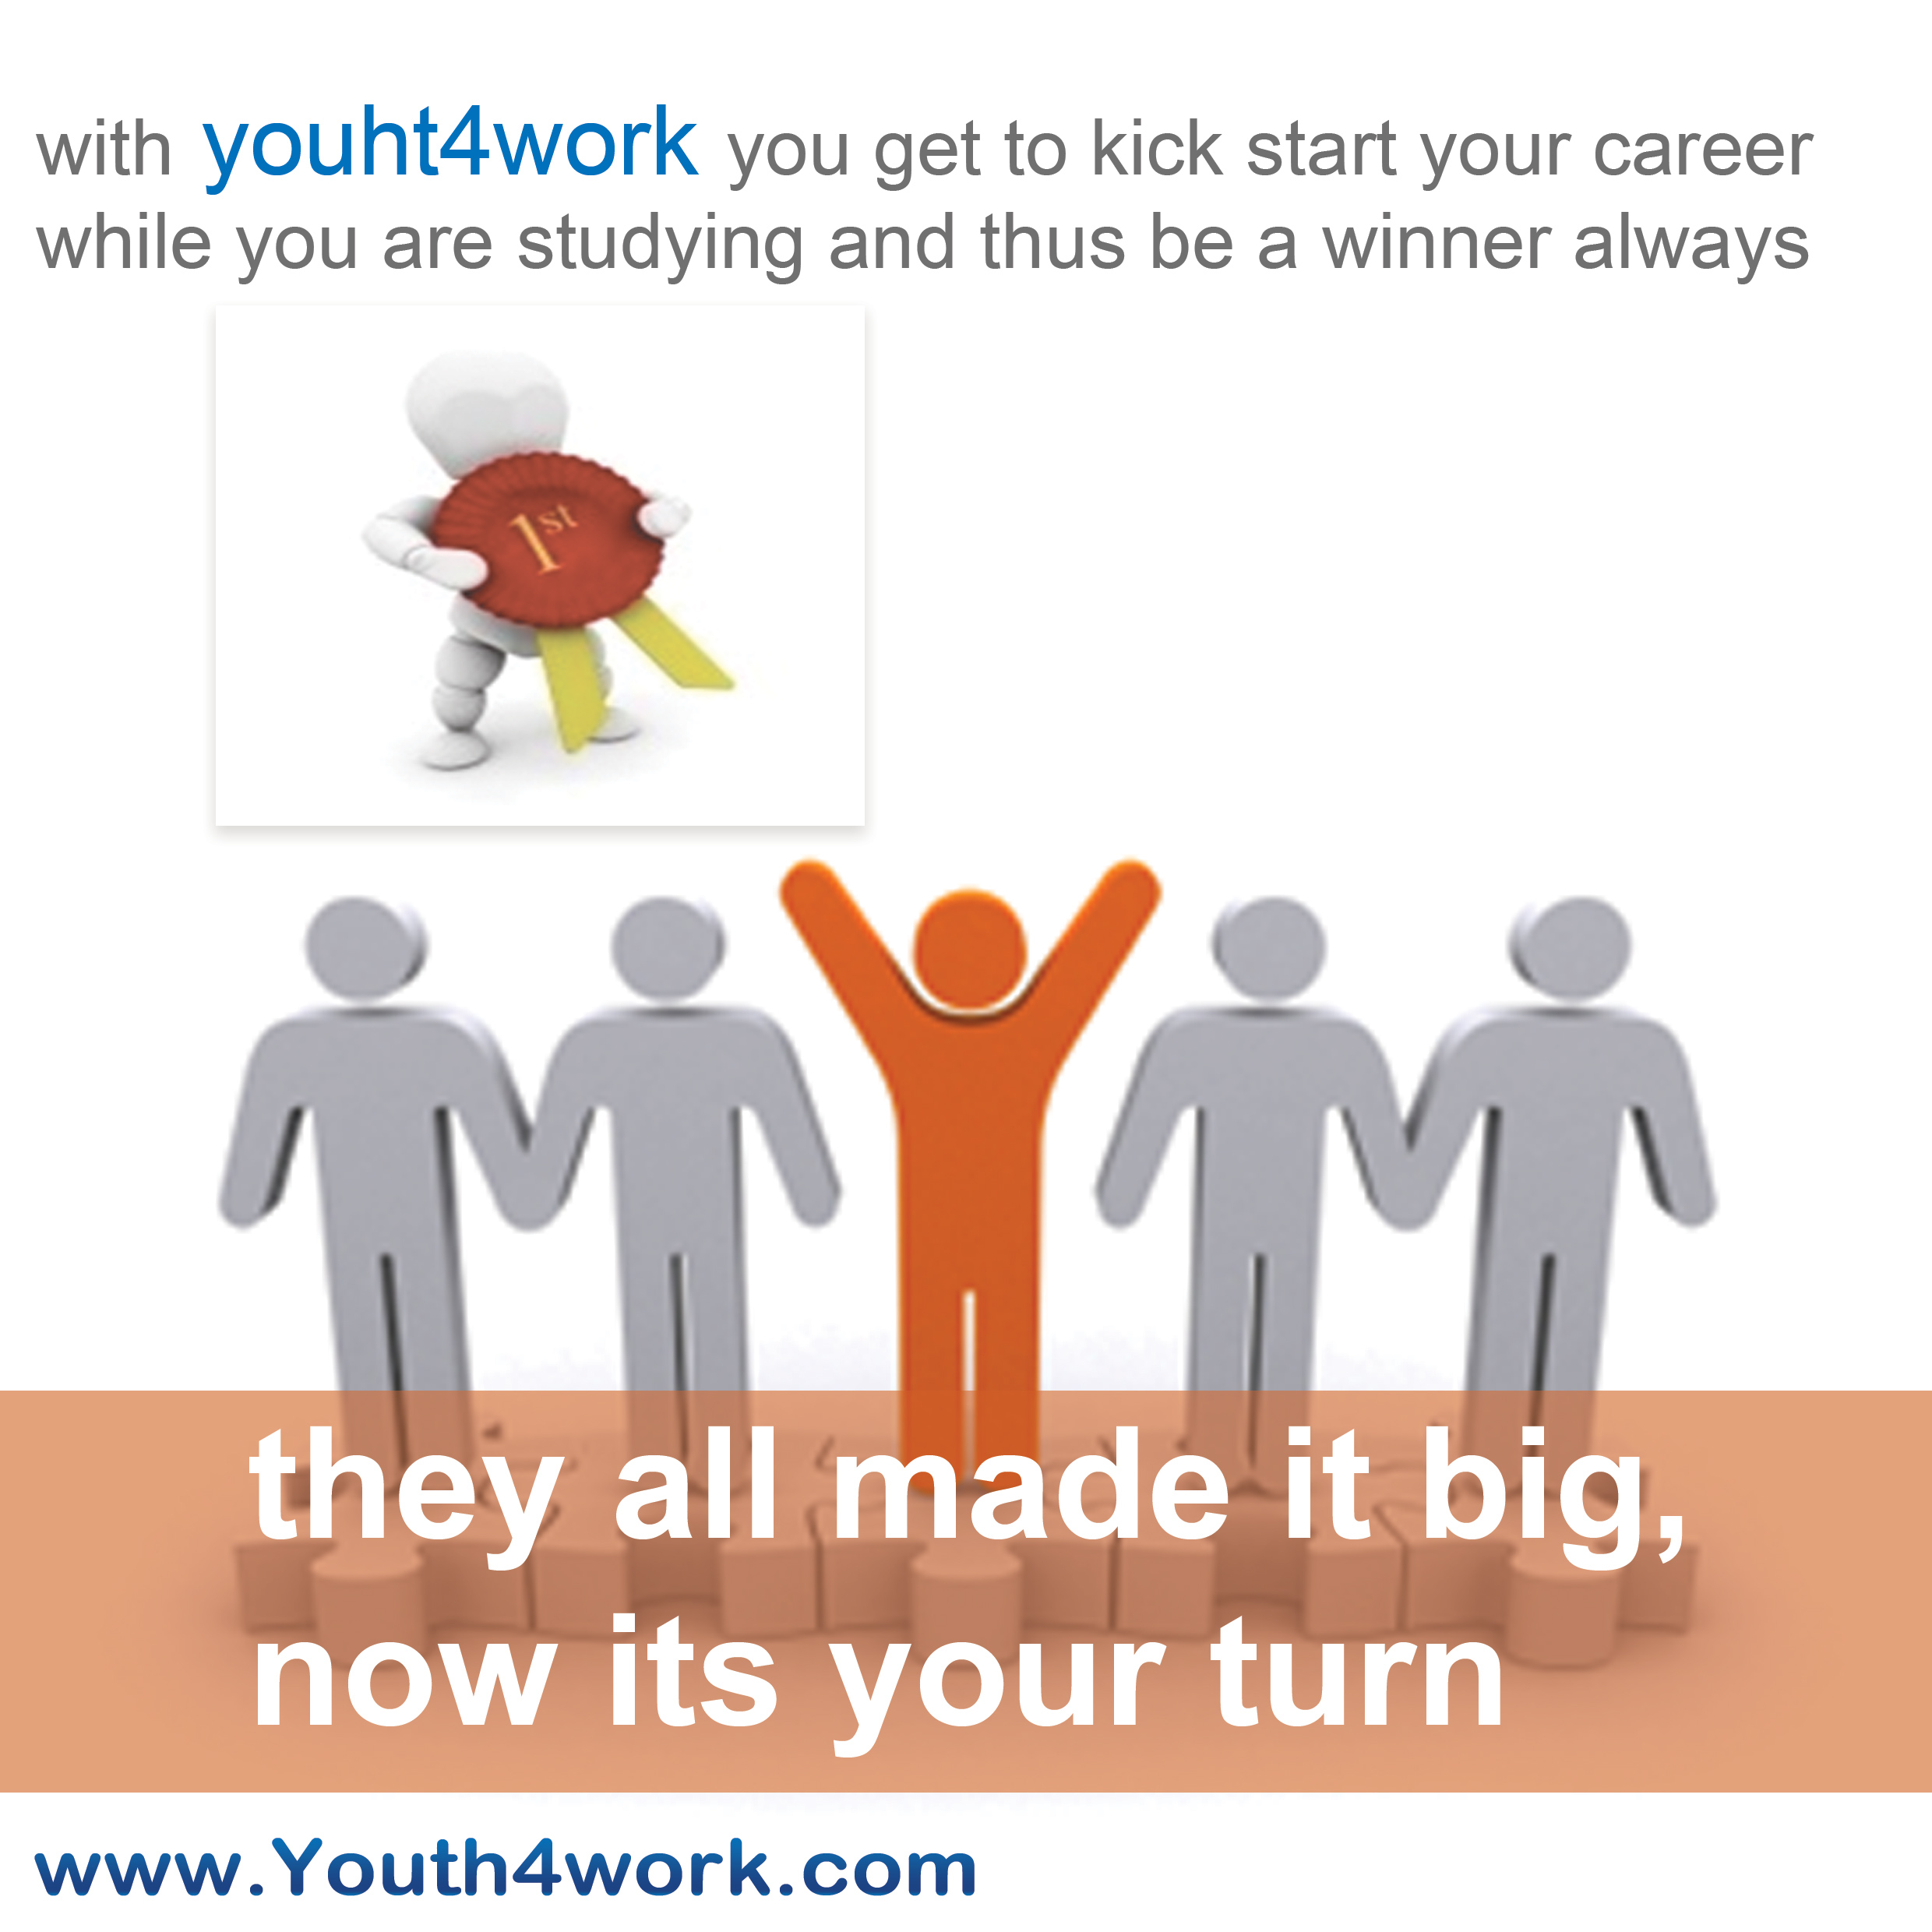 KICK START YOUR CAREER WITH YOUTH4WORK